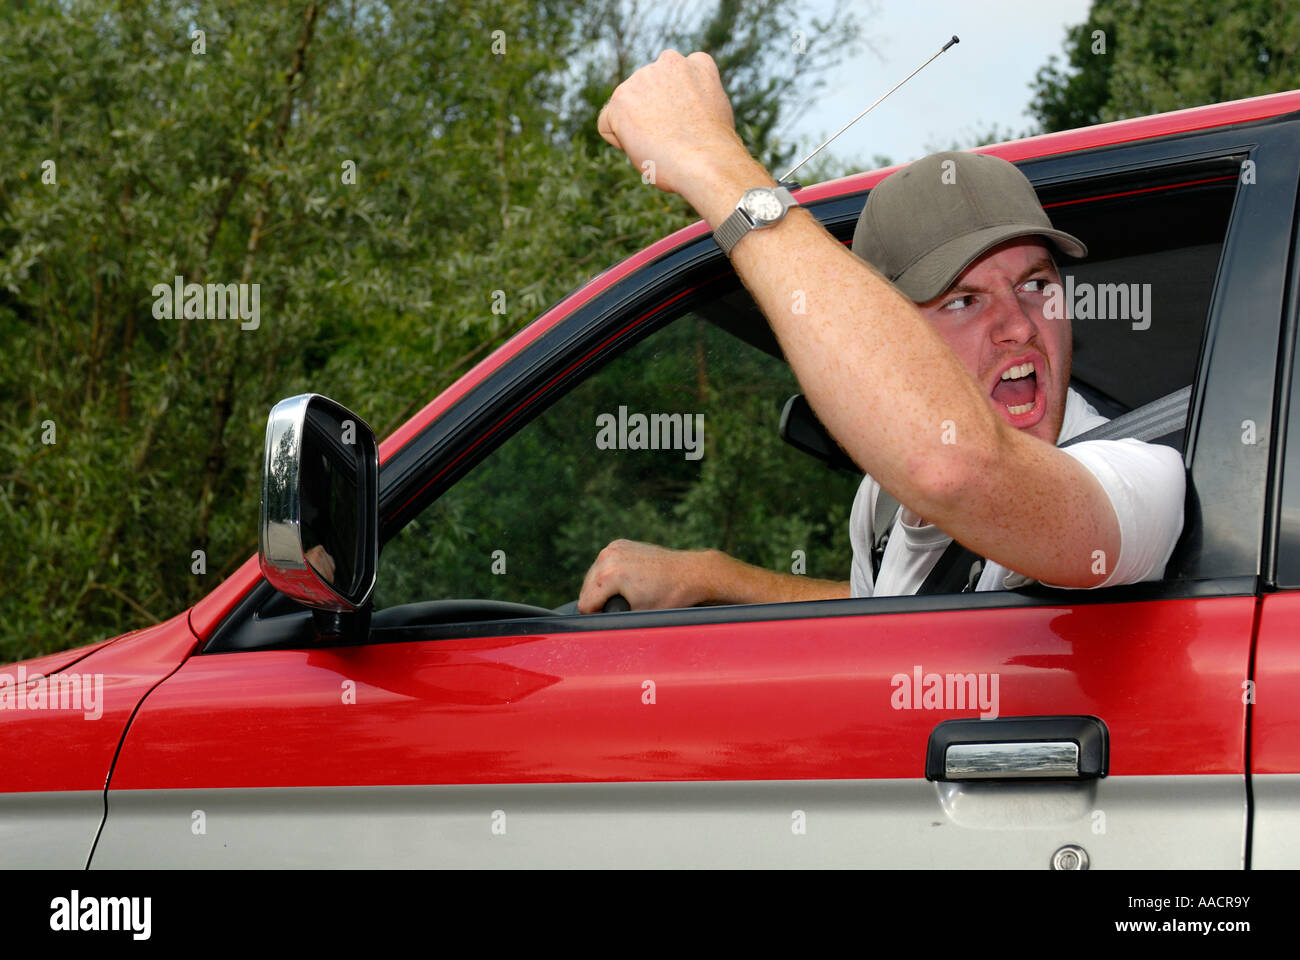 Cardriver makes angry gestures - Germany, Europe - Stock Image